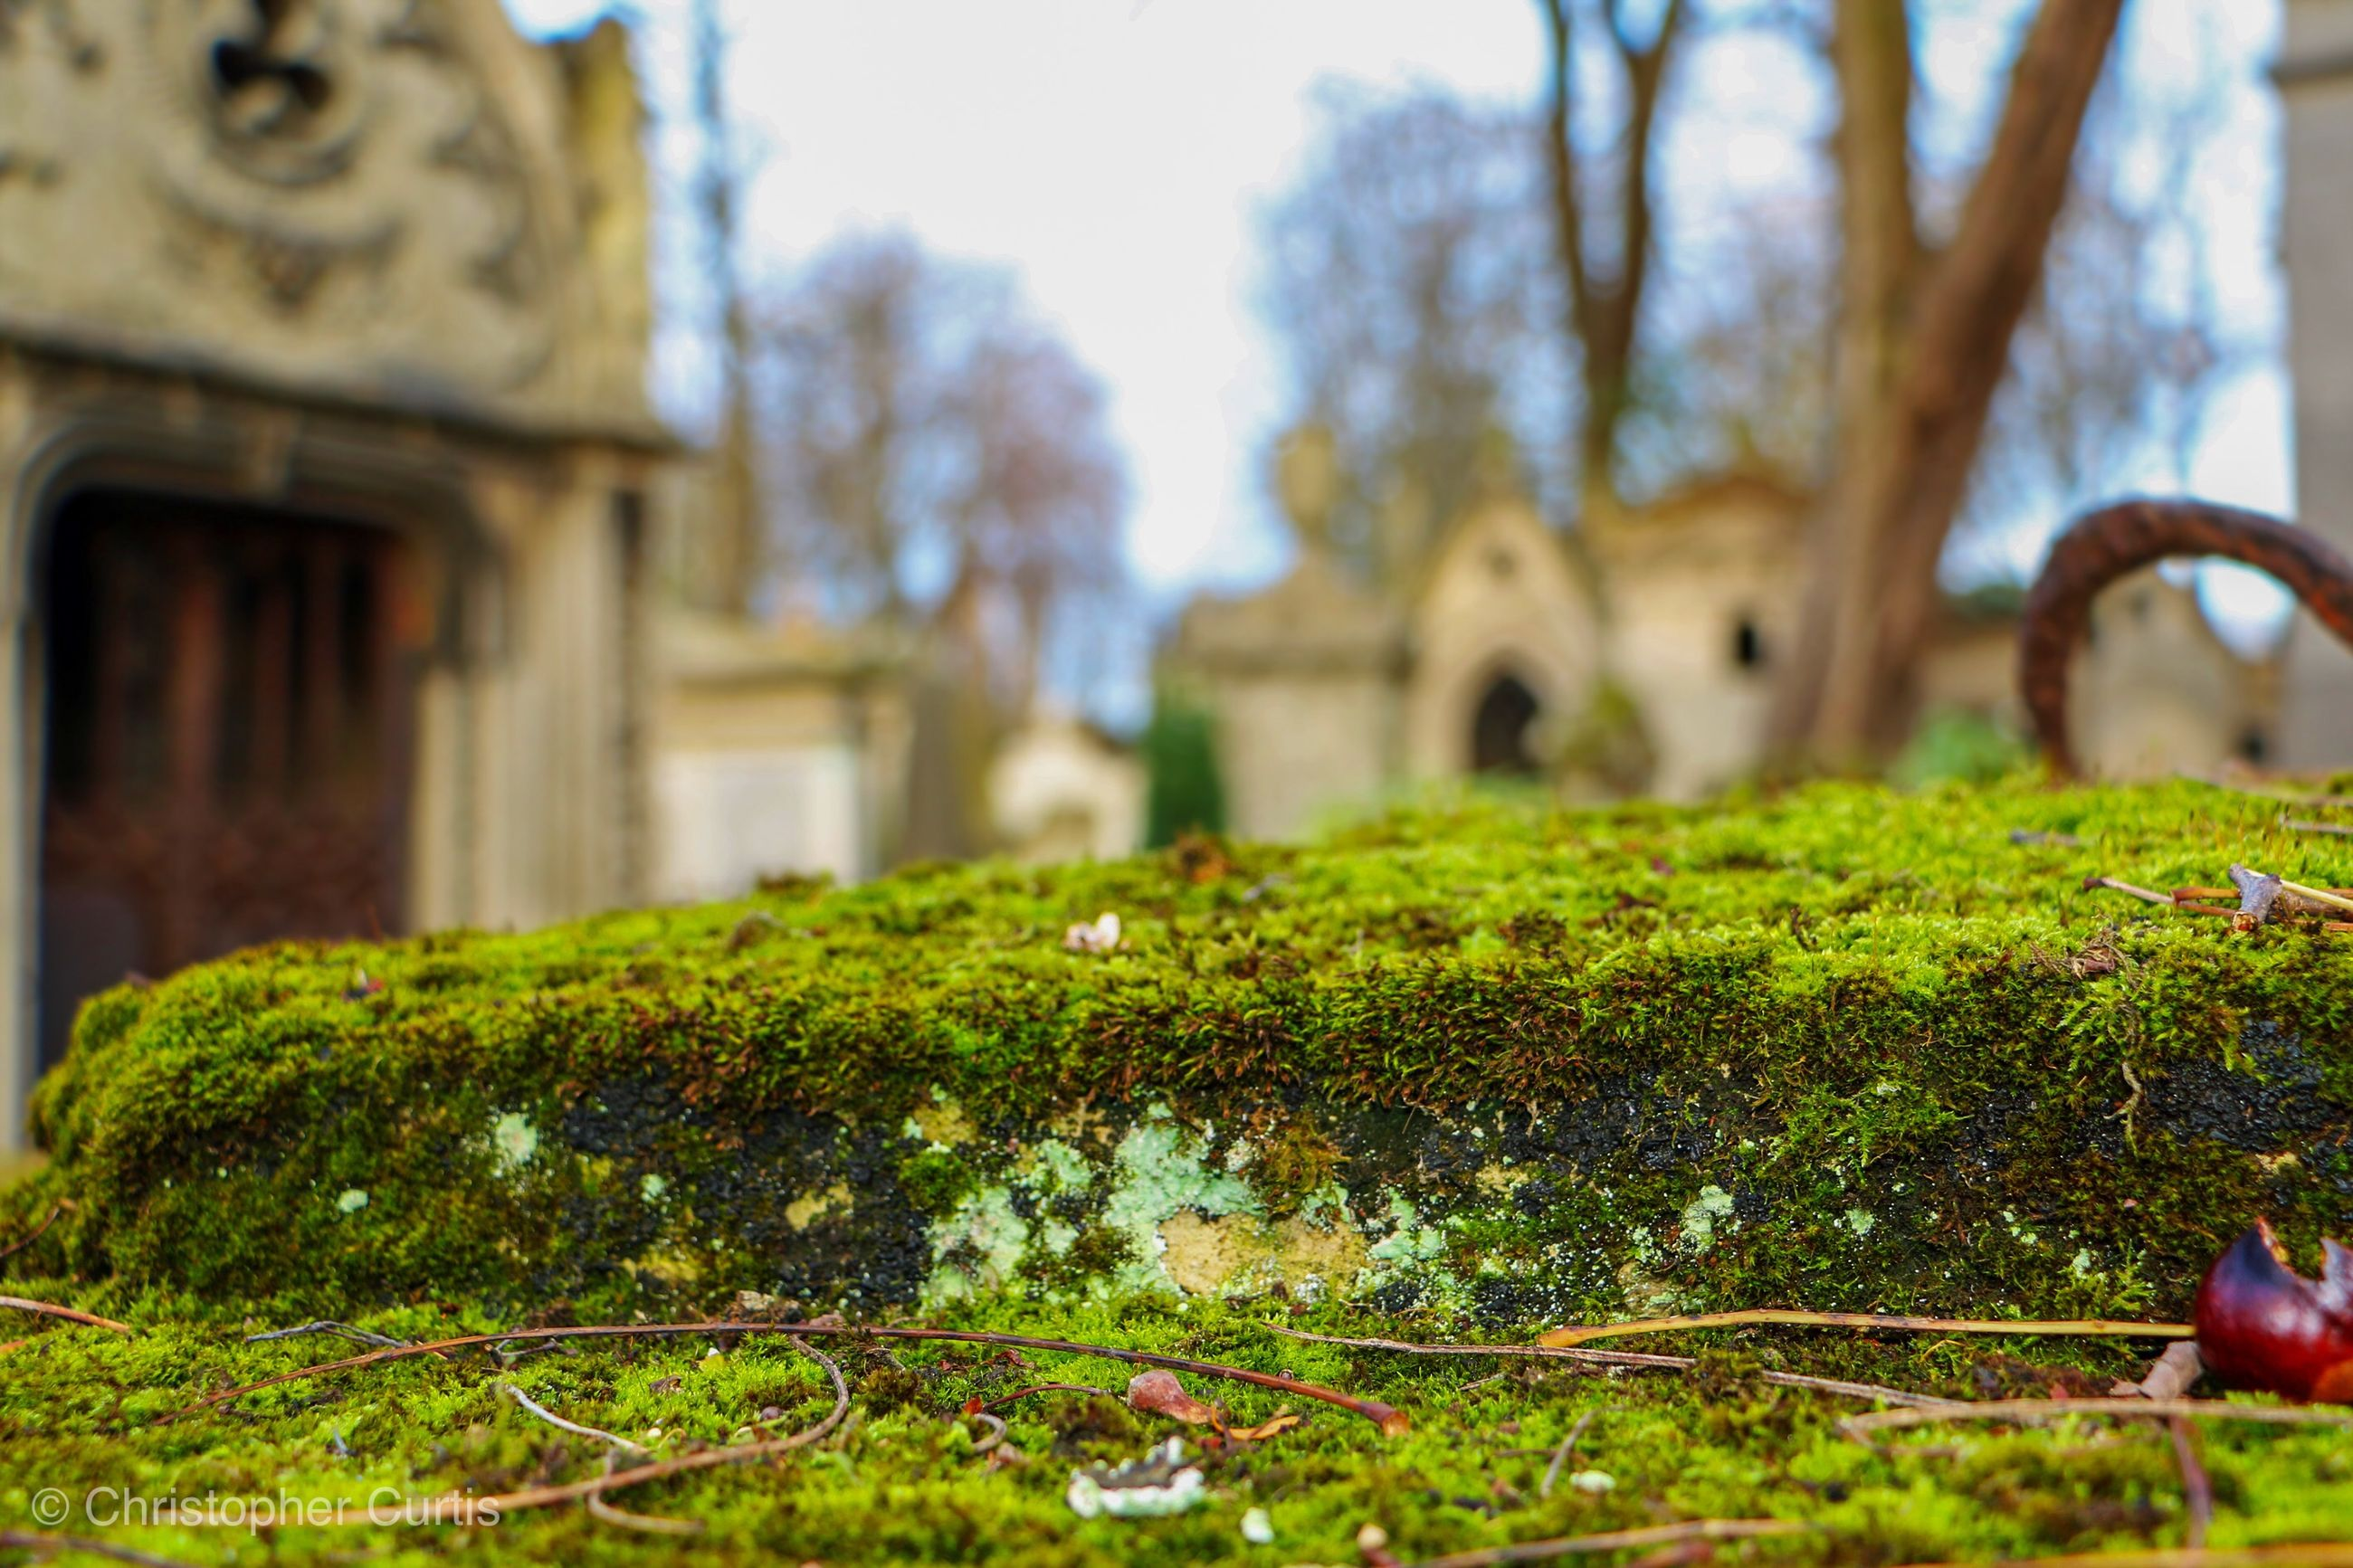 CLOSE-UP OF MOSS GROWING ON PLANT IN GARDEN